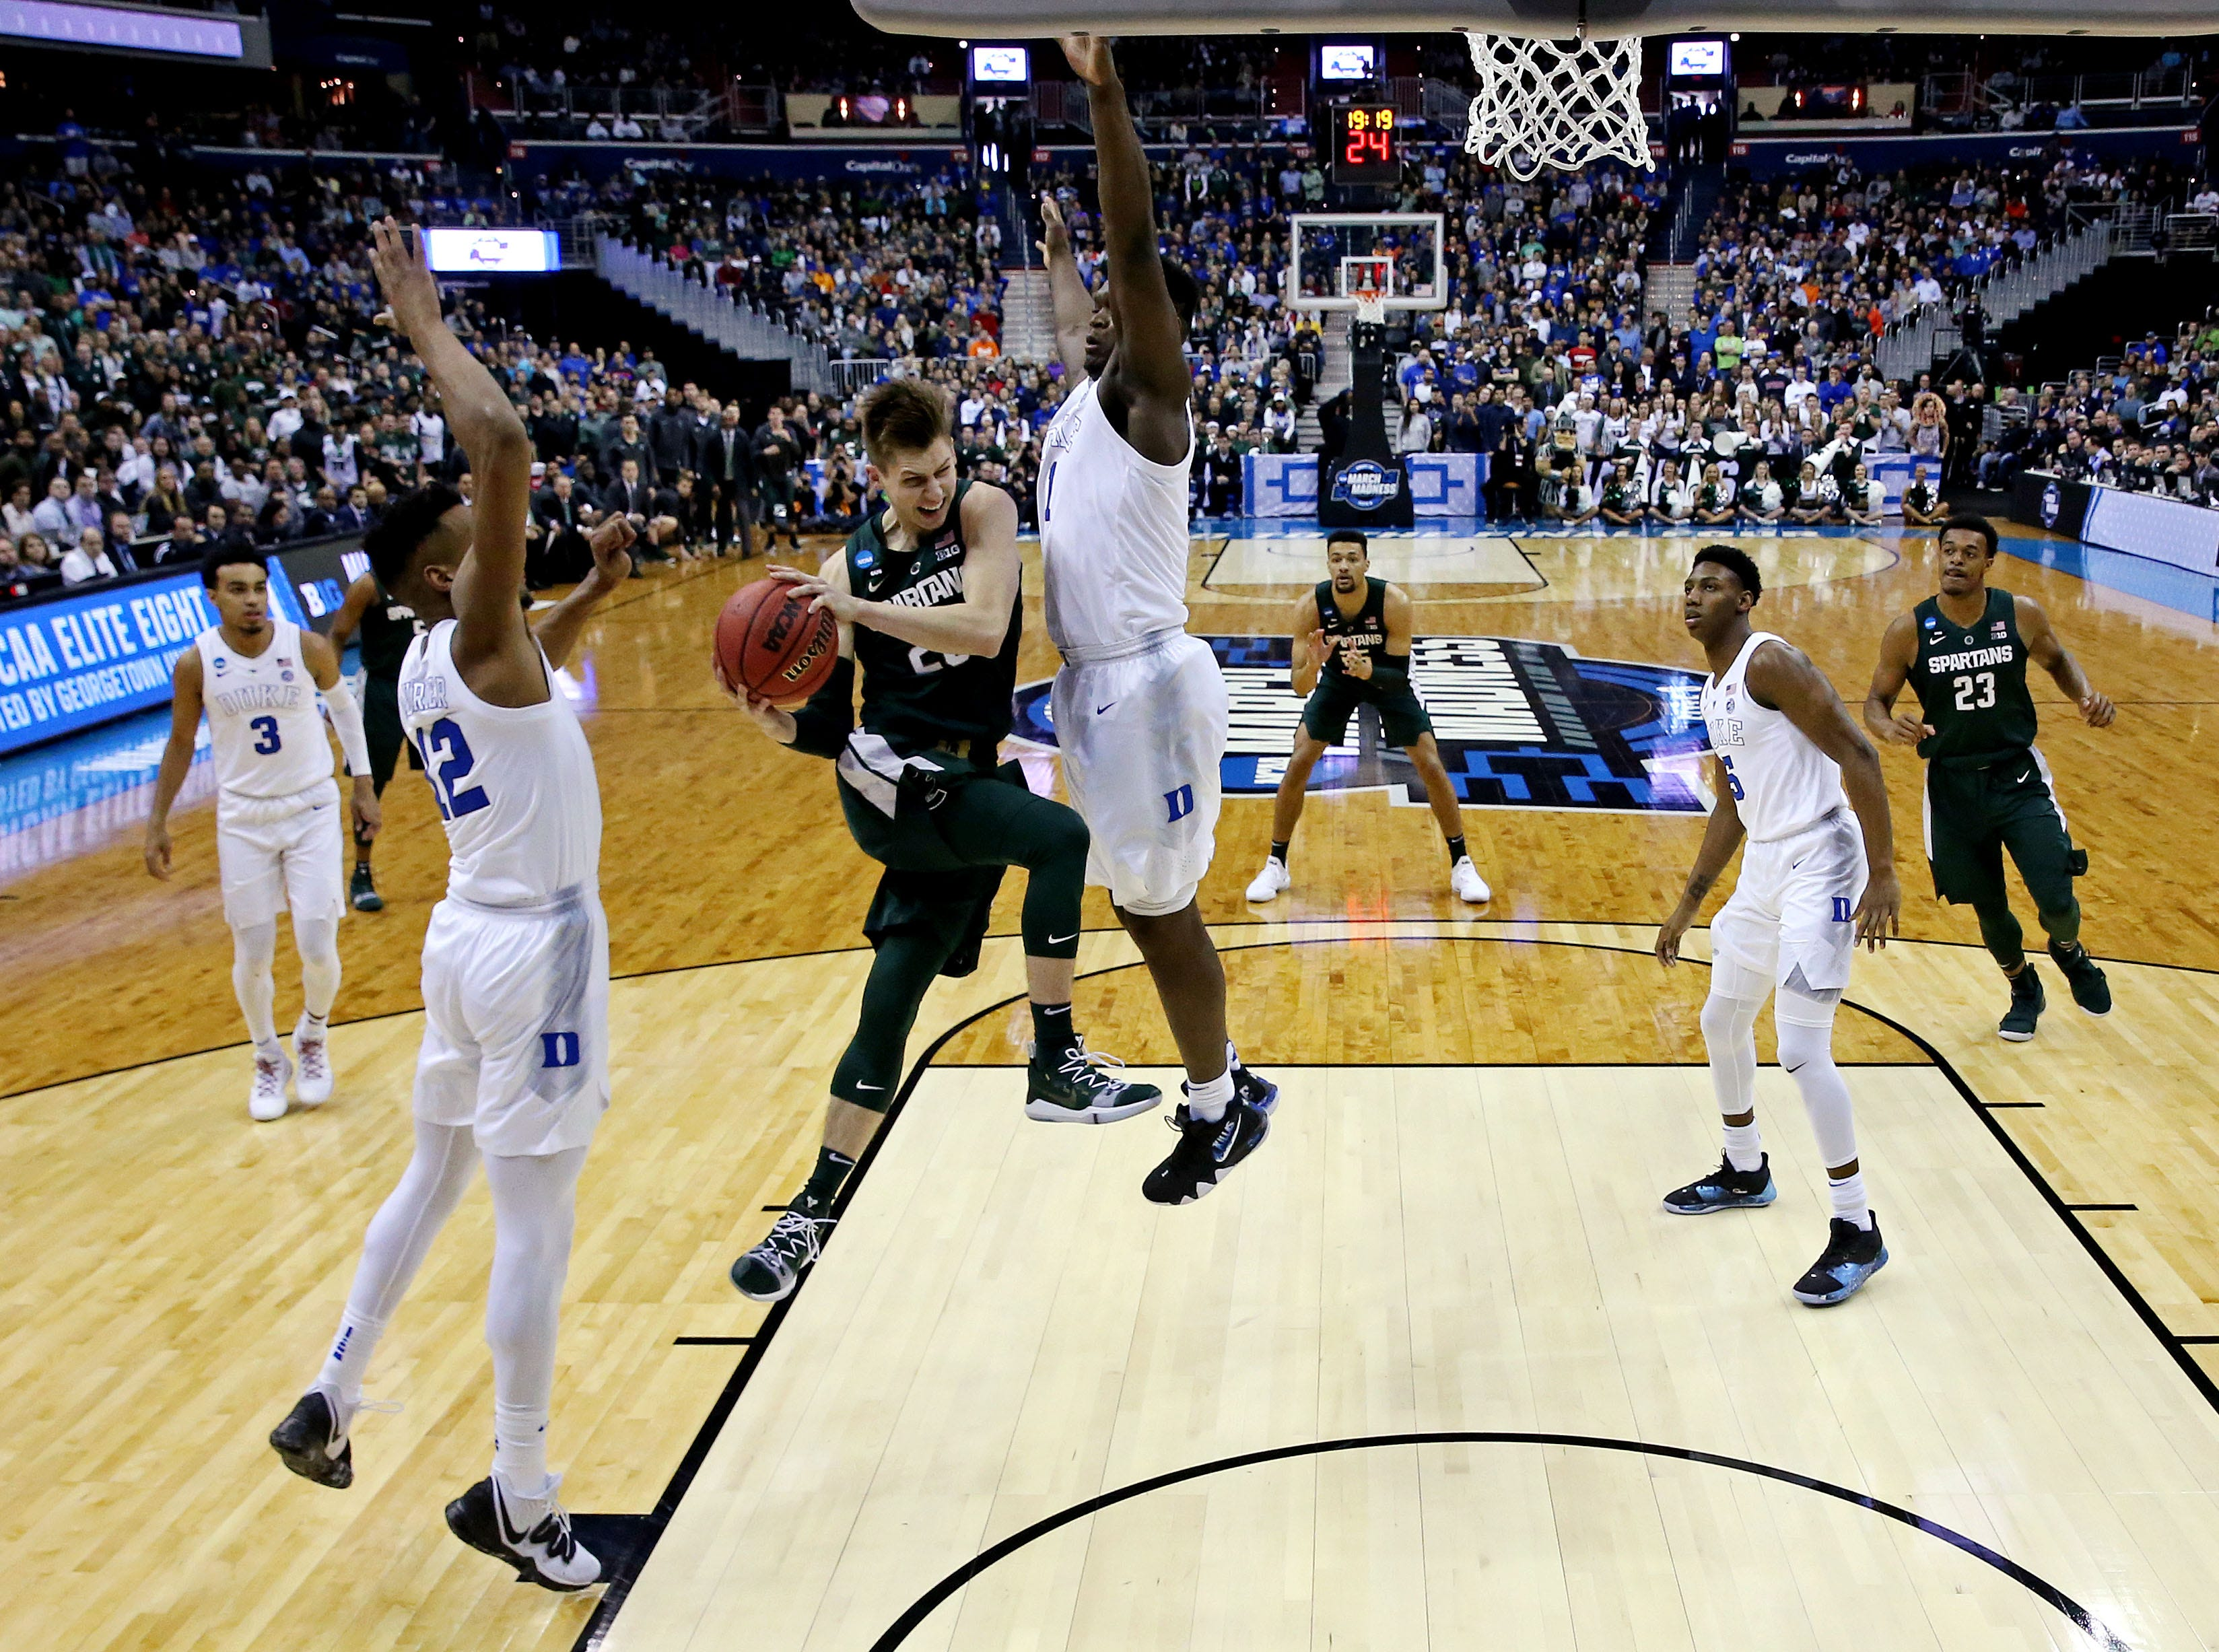 Mar 31, 2019; Washington, DC, USA; Michigan State Spartans guard Matt McQuaid (20) drives to the basket against Duke Blue Devils forward Zion Williamson (1) and forward Javin DeLaurier (12) during the first half in the championship game of the east regional of the 2019 NCAA Tournament at Capital One Arena. Mandatory Credit: Geoff Burke-USA TODAY Sports